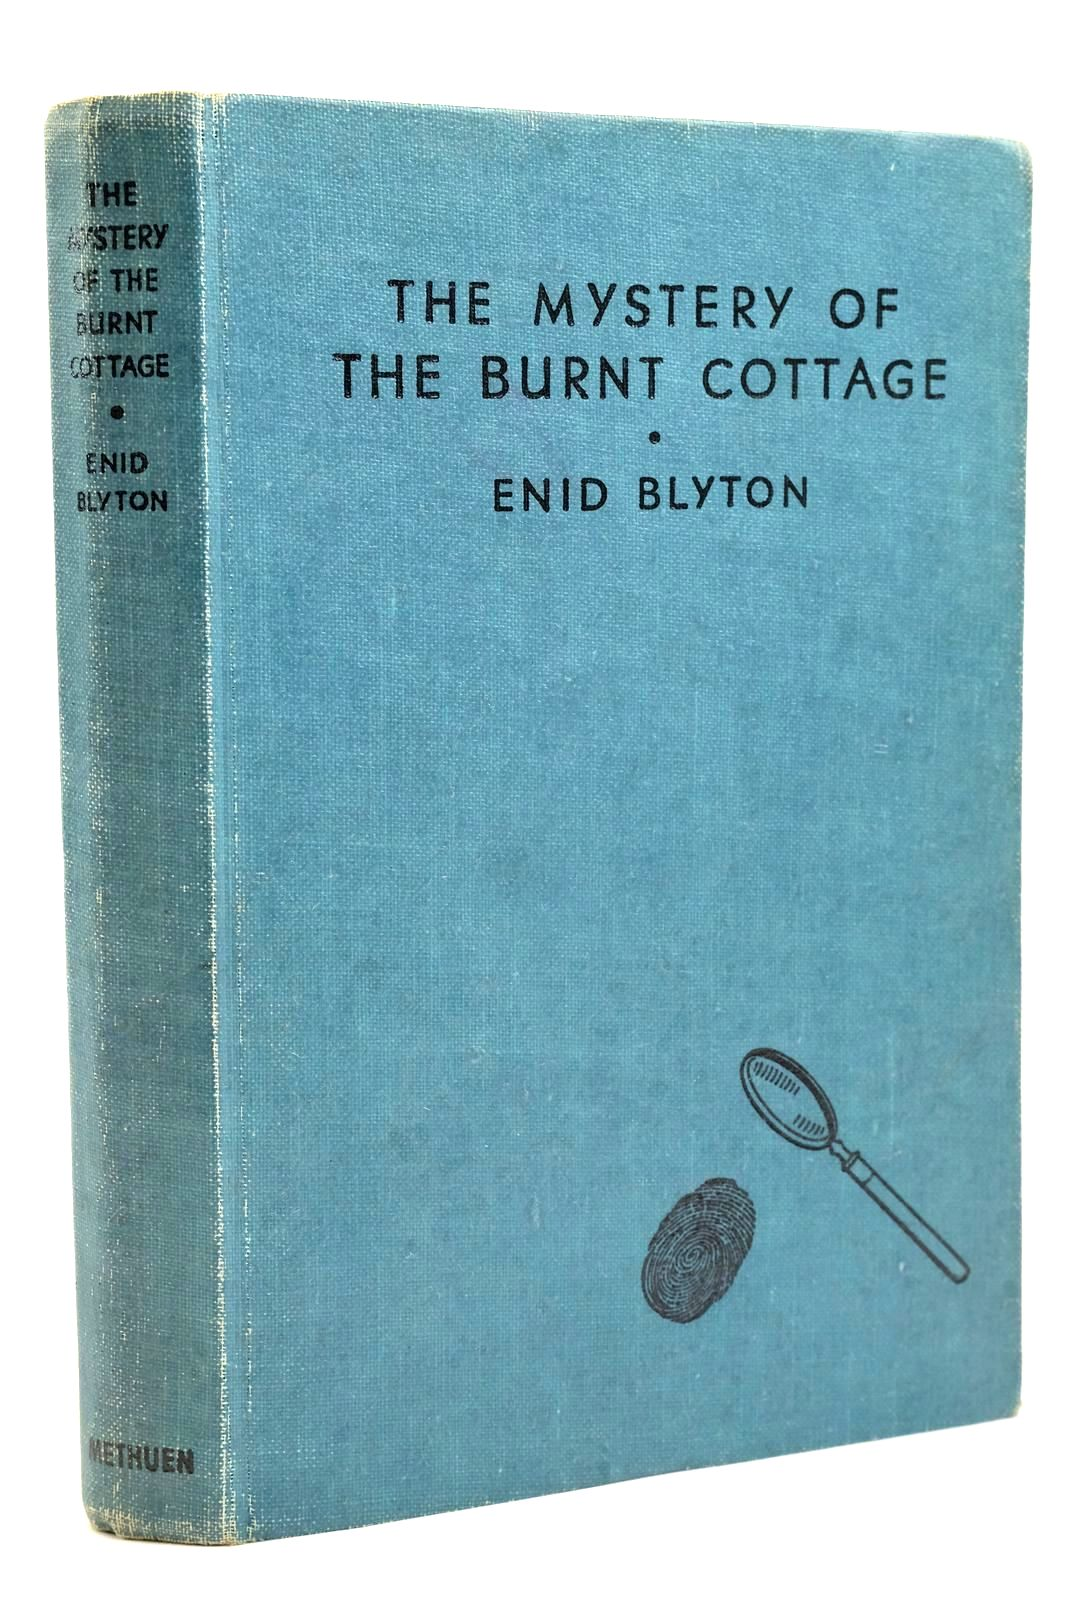 Photo of THE MYSTERY OF THE BURNT COTTAGE written by Blyton, Enid illustrated by Abbey, J. published by Methuen & Co. Ltd. (STOCK CODE: 1320751)  for sale by Stella & Rose's Books